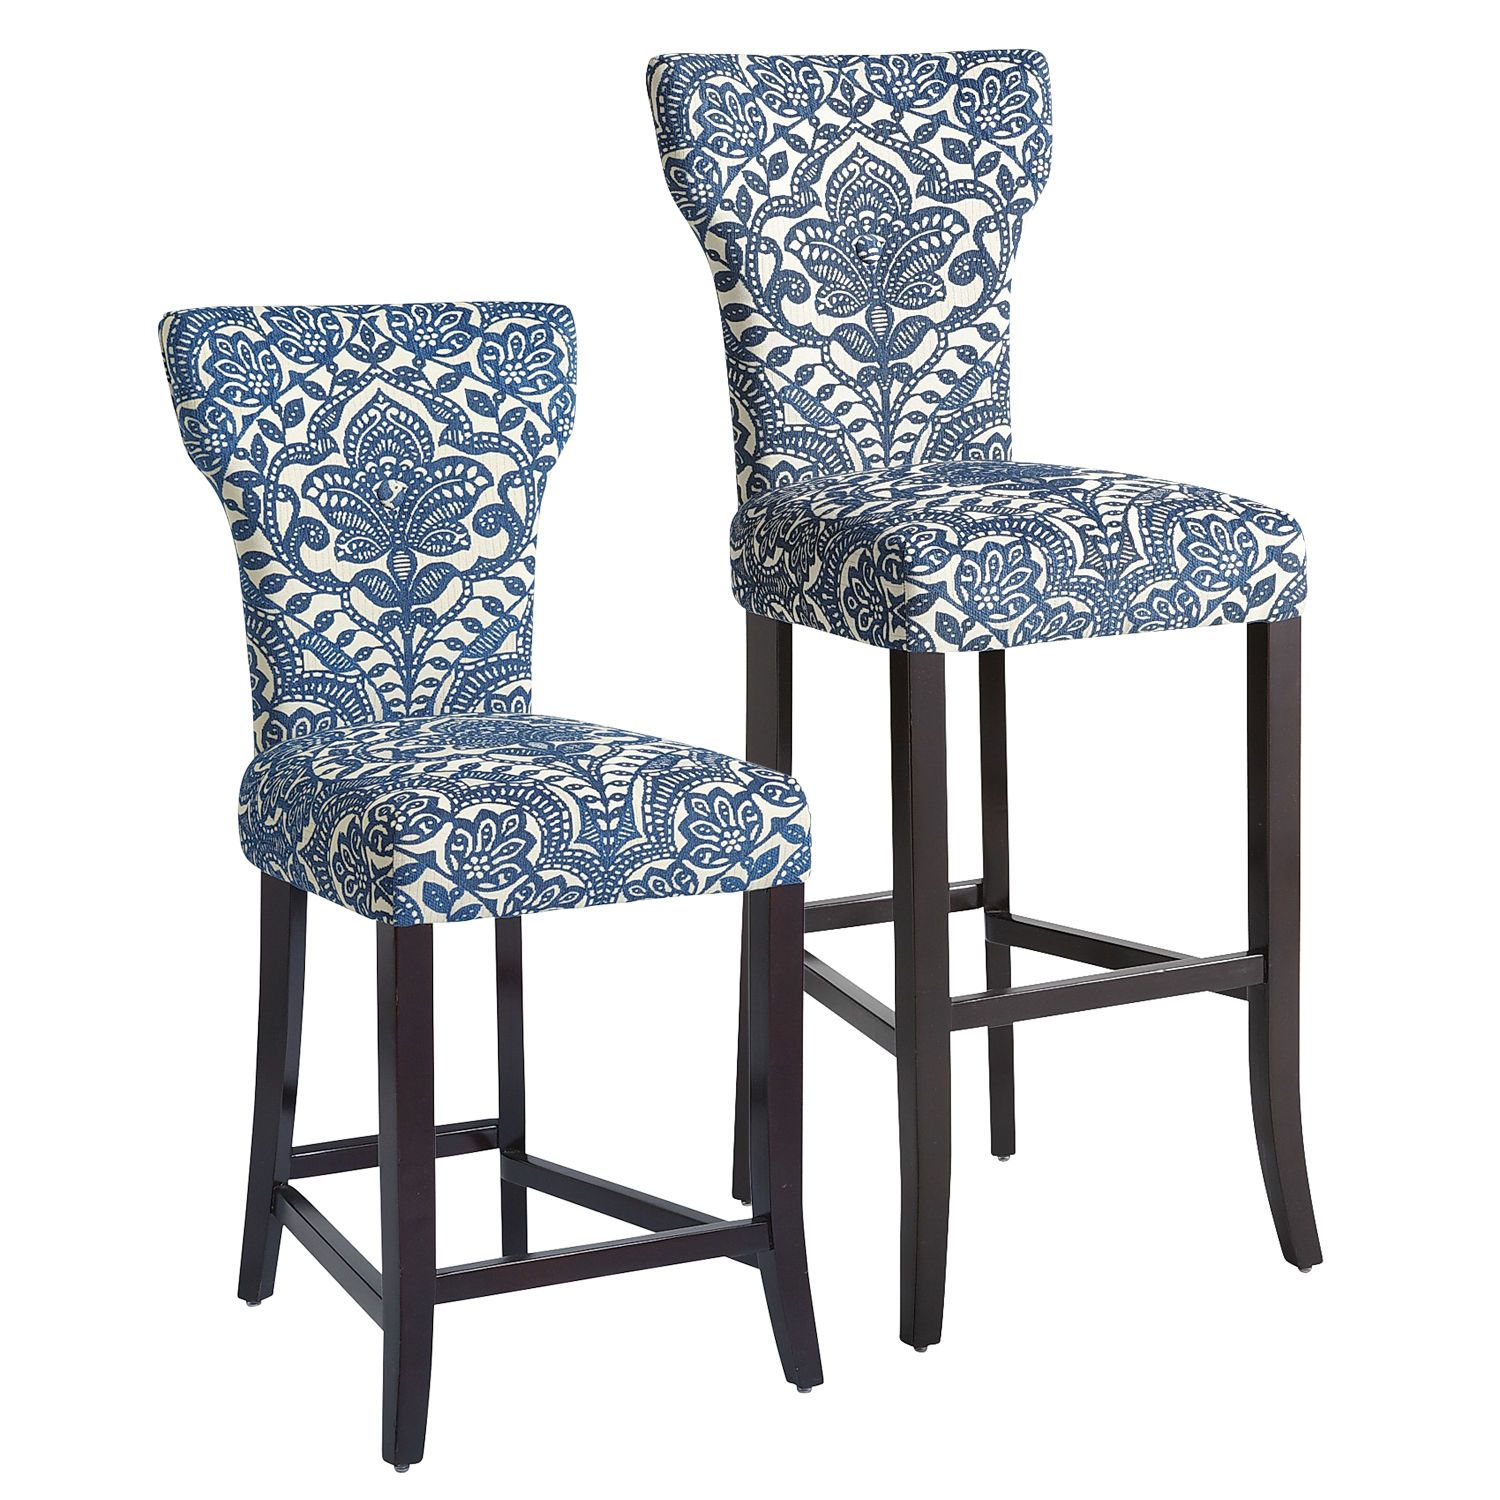 Phenomenal Carmilla Bar Counter Stools Blue Damask Pier 1 Imports Gmtry Best Dining Table And Chair Ideas Images Gmtryco